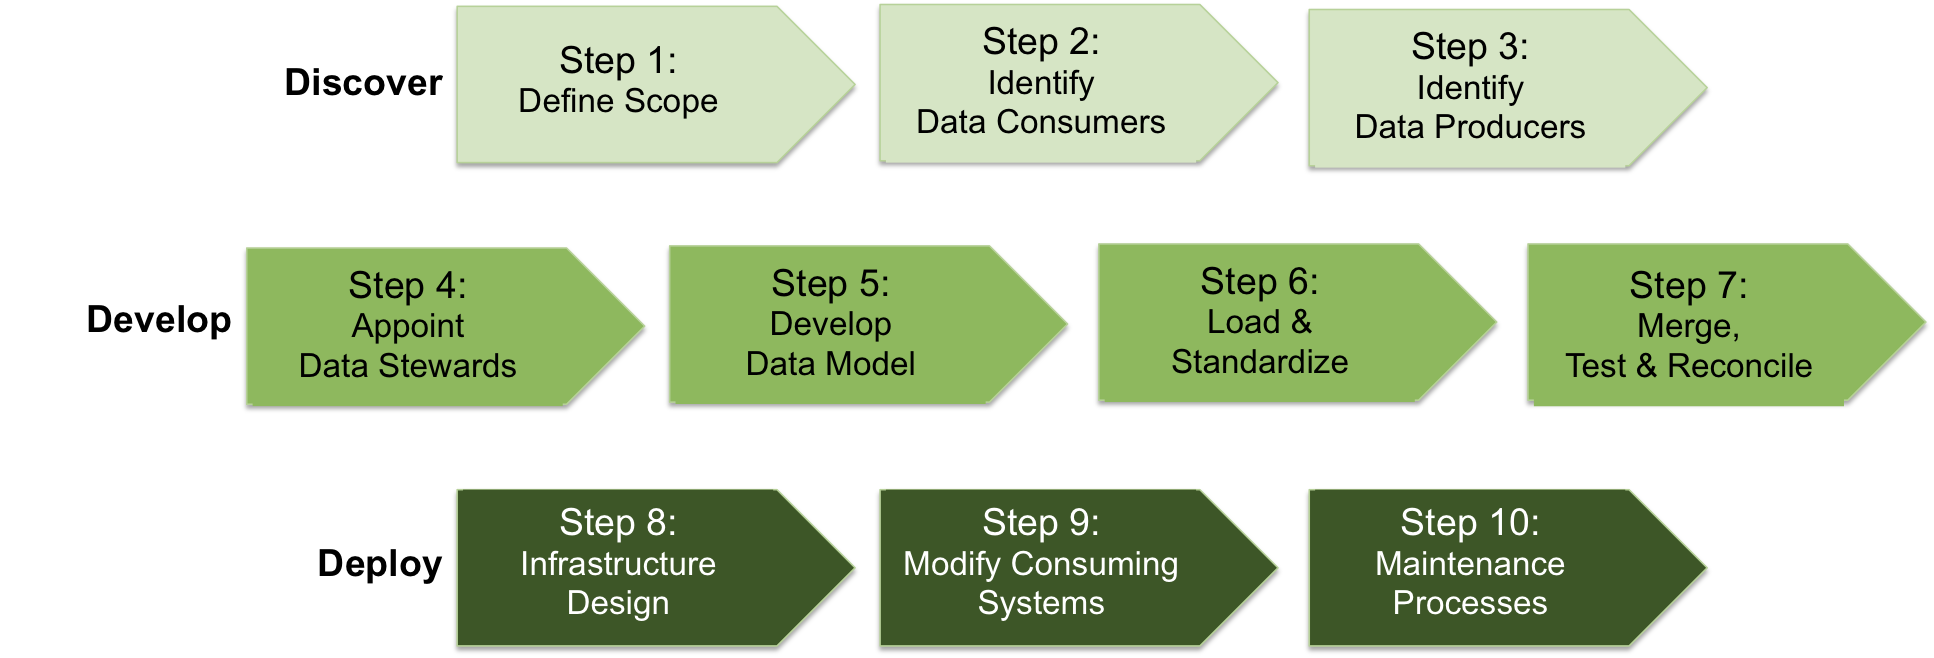 10-step methodology to deliver a single view